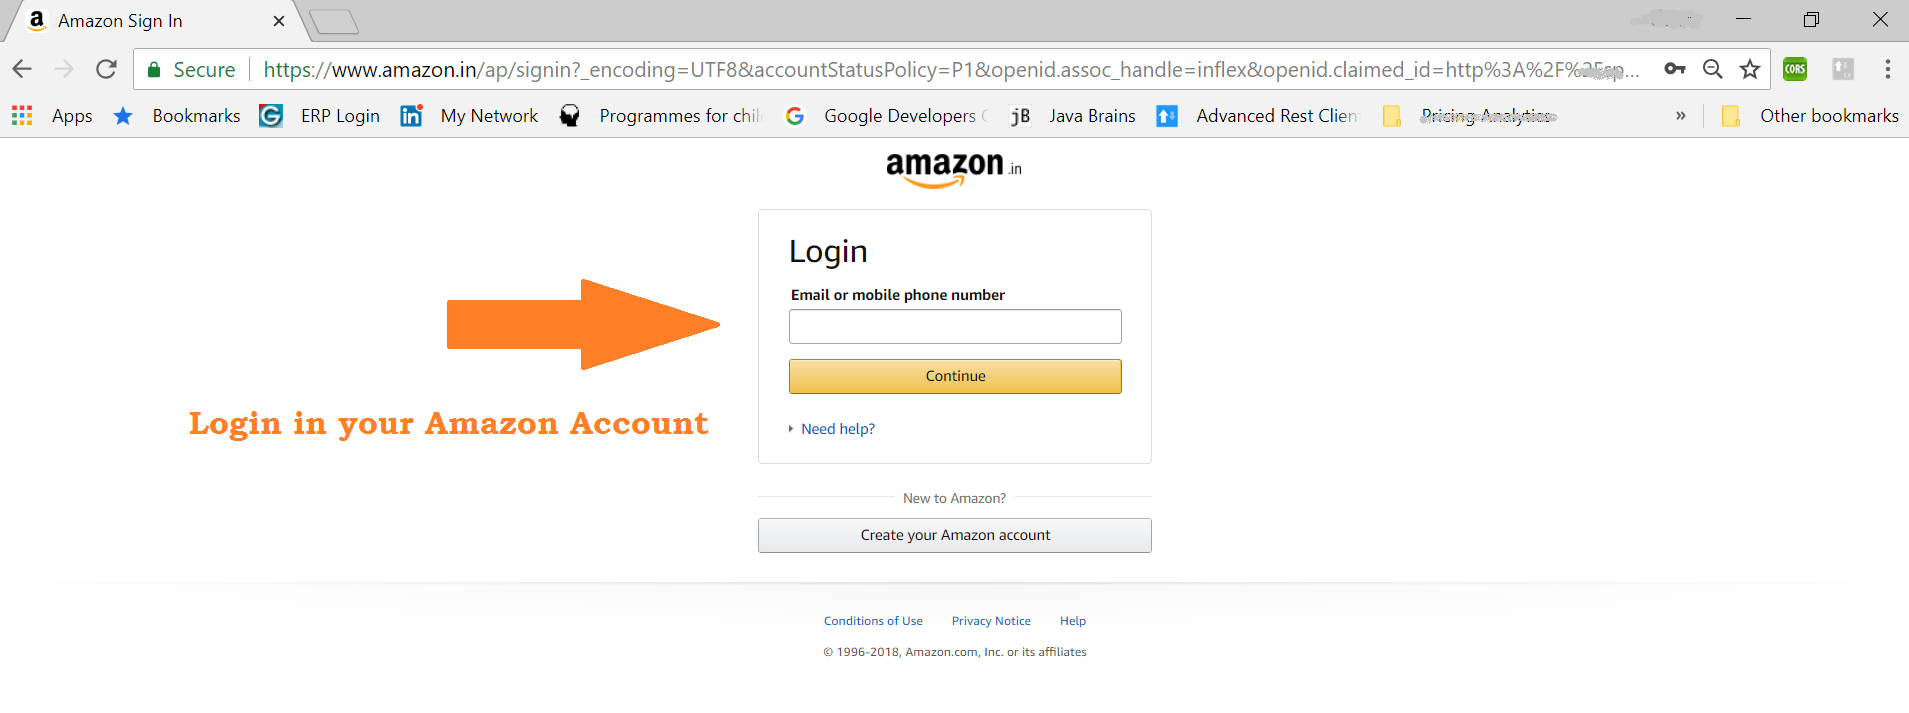 Steps to get Amazon Email Delivery Code in India using Message Center